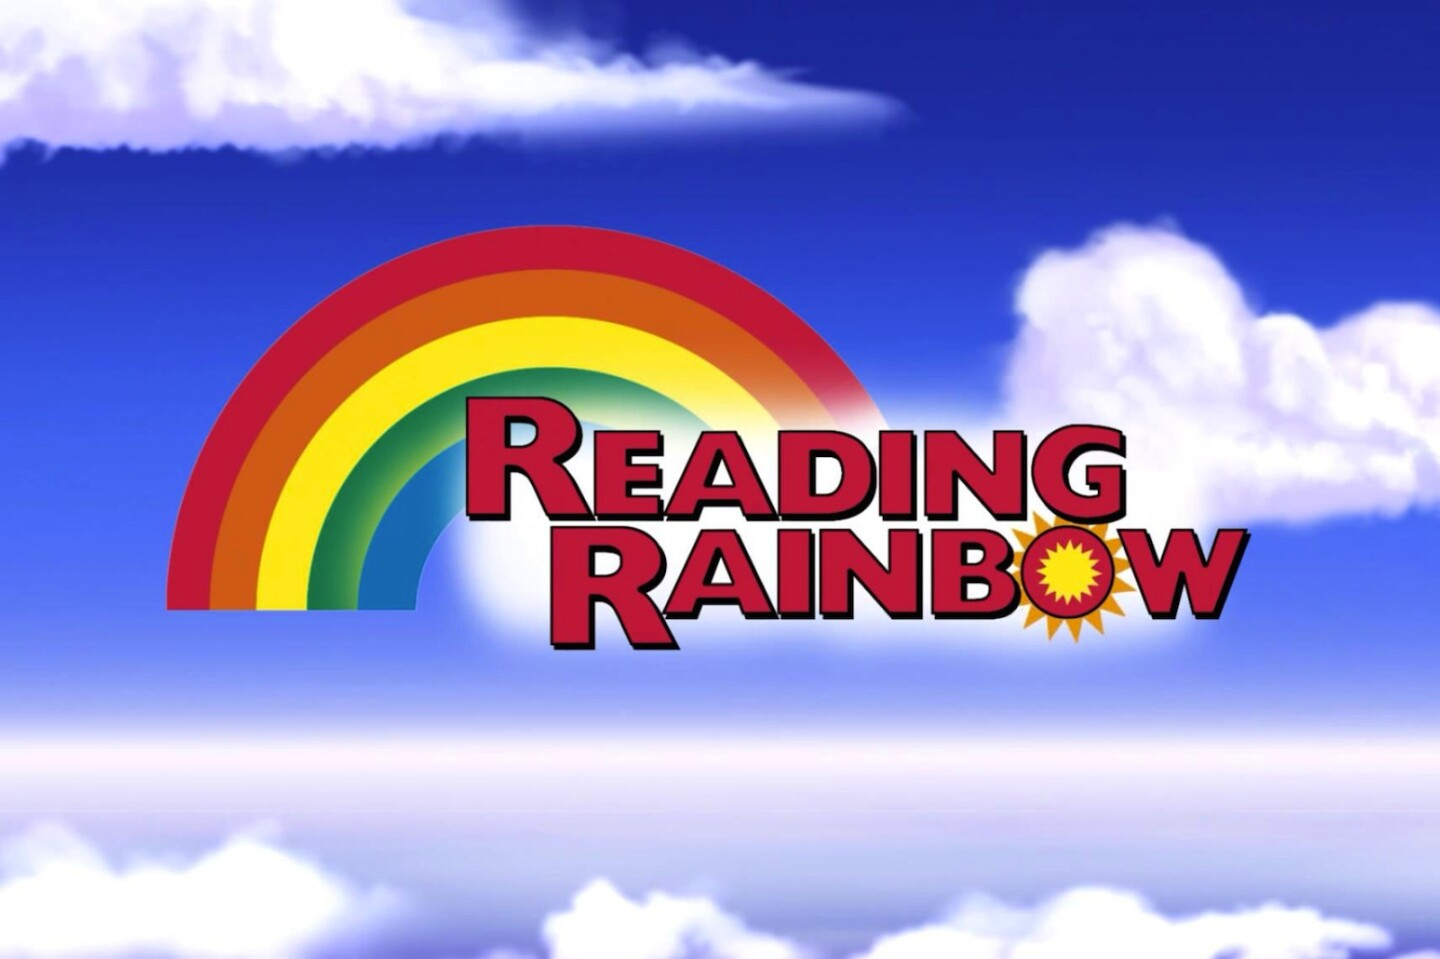 Reading Rainbow TV logo